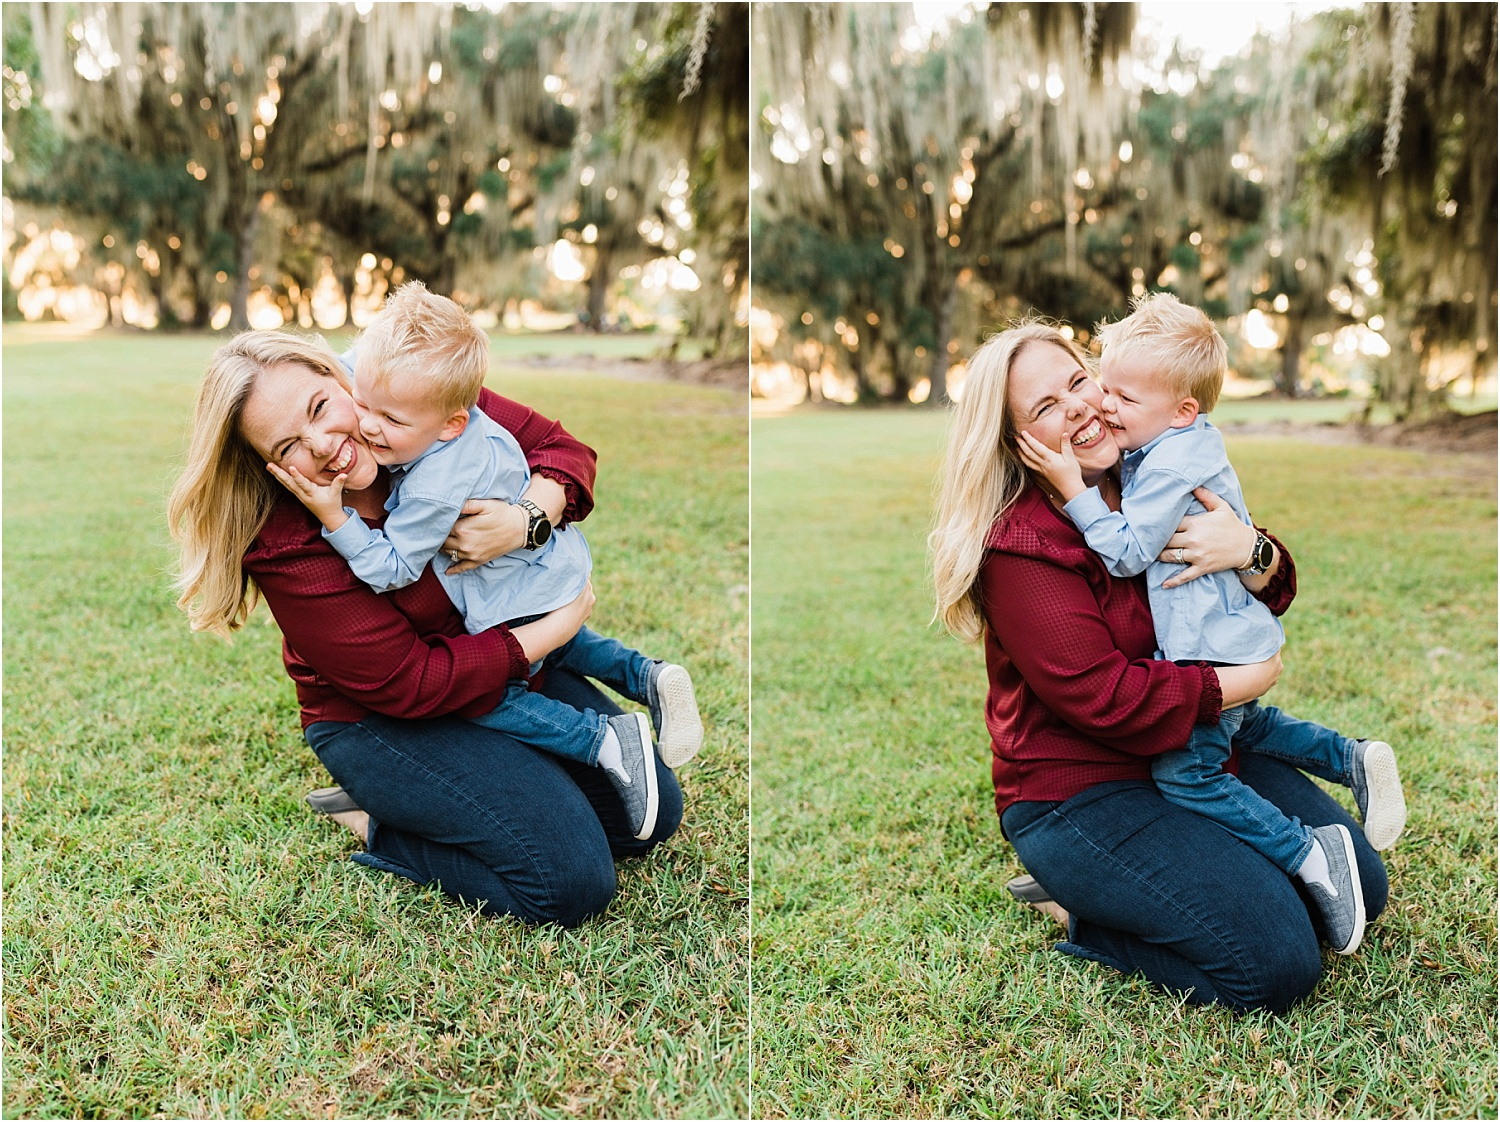 Smalley Family Fall 2019-Fountainbleau-State-Park-Family-Photos_Gabby Chapin Photography_0041_BLOG.jpg